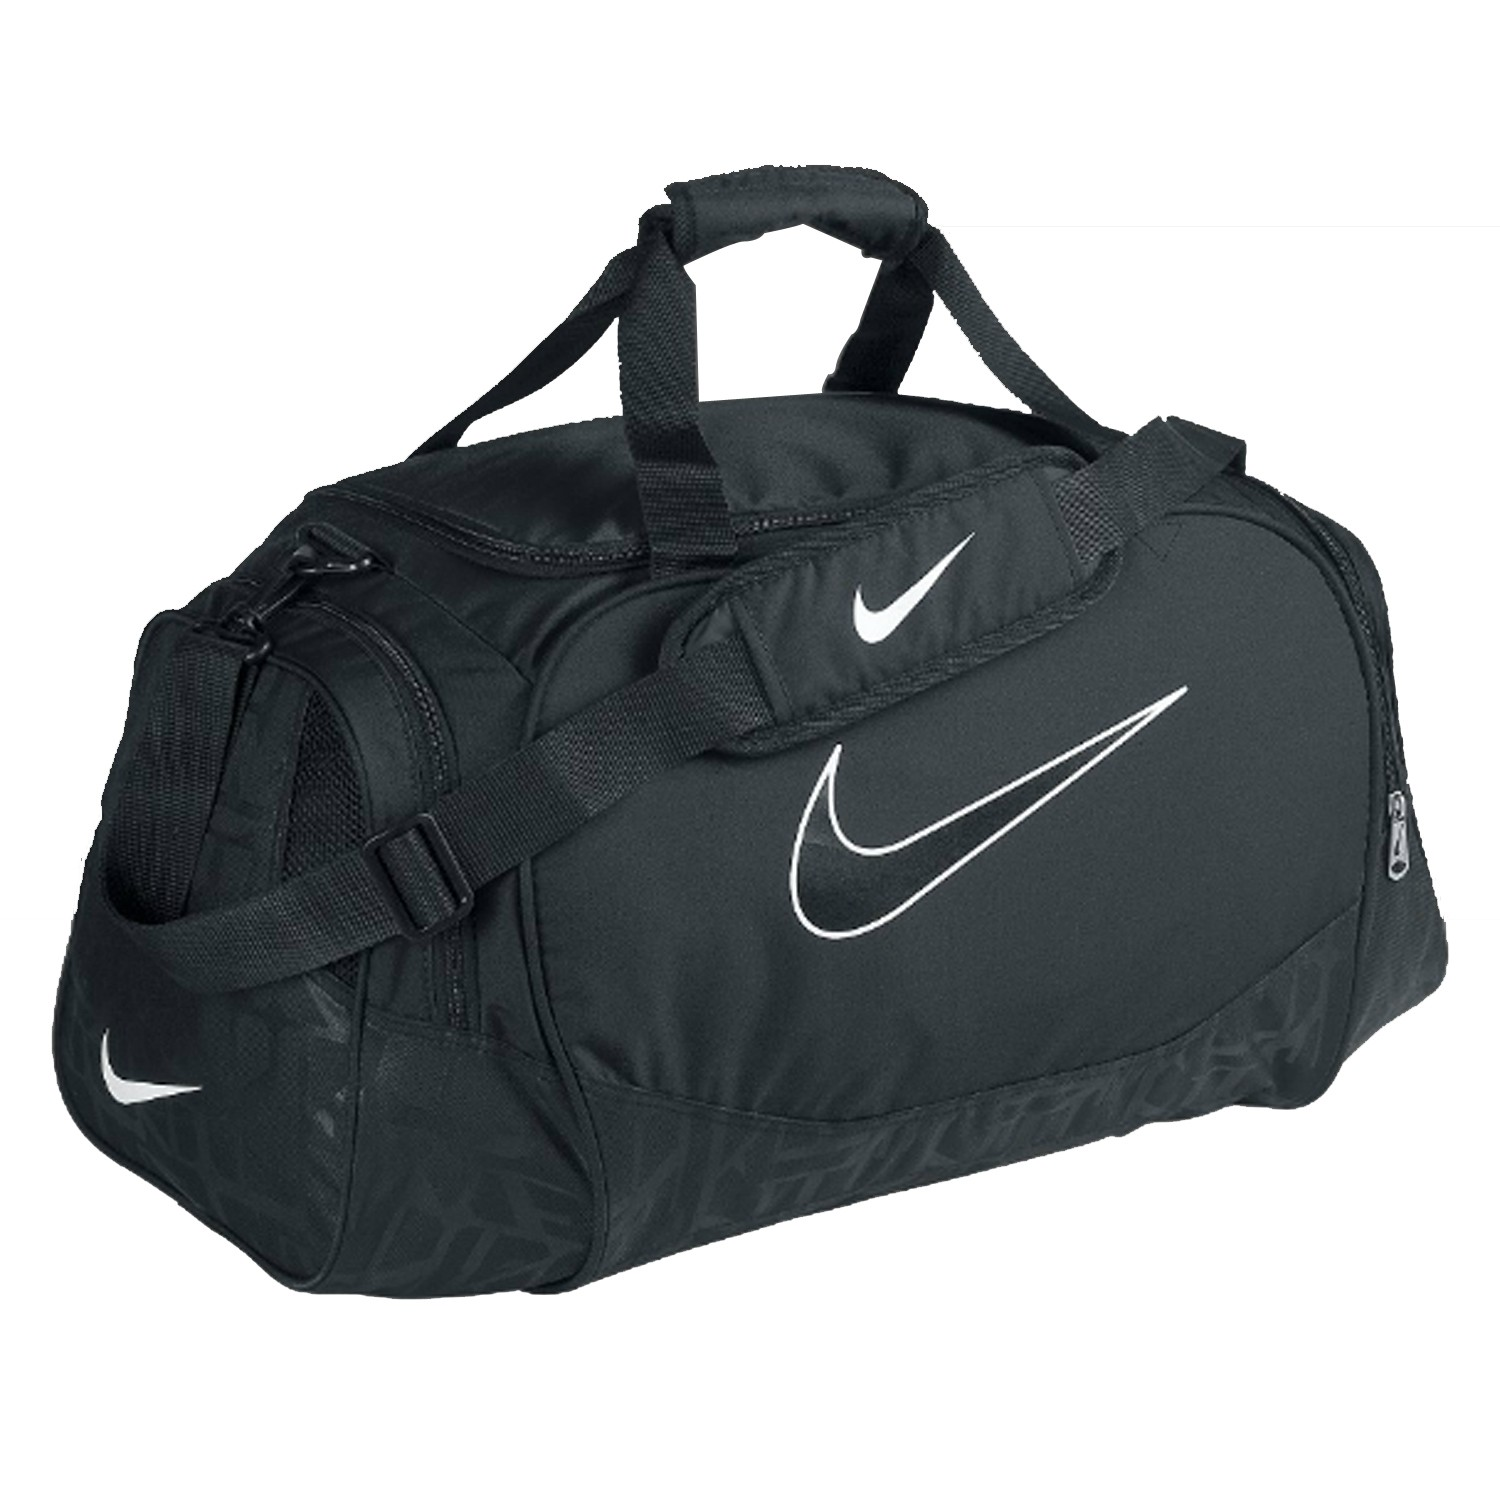 Bag Gloves Images: Duffel Bag Nike